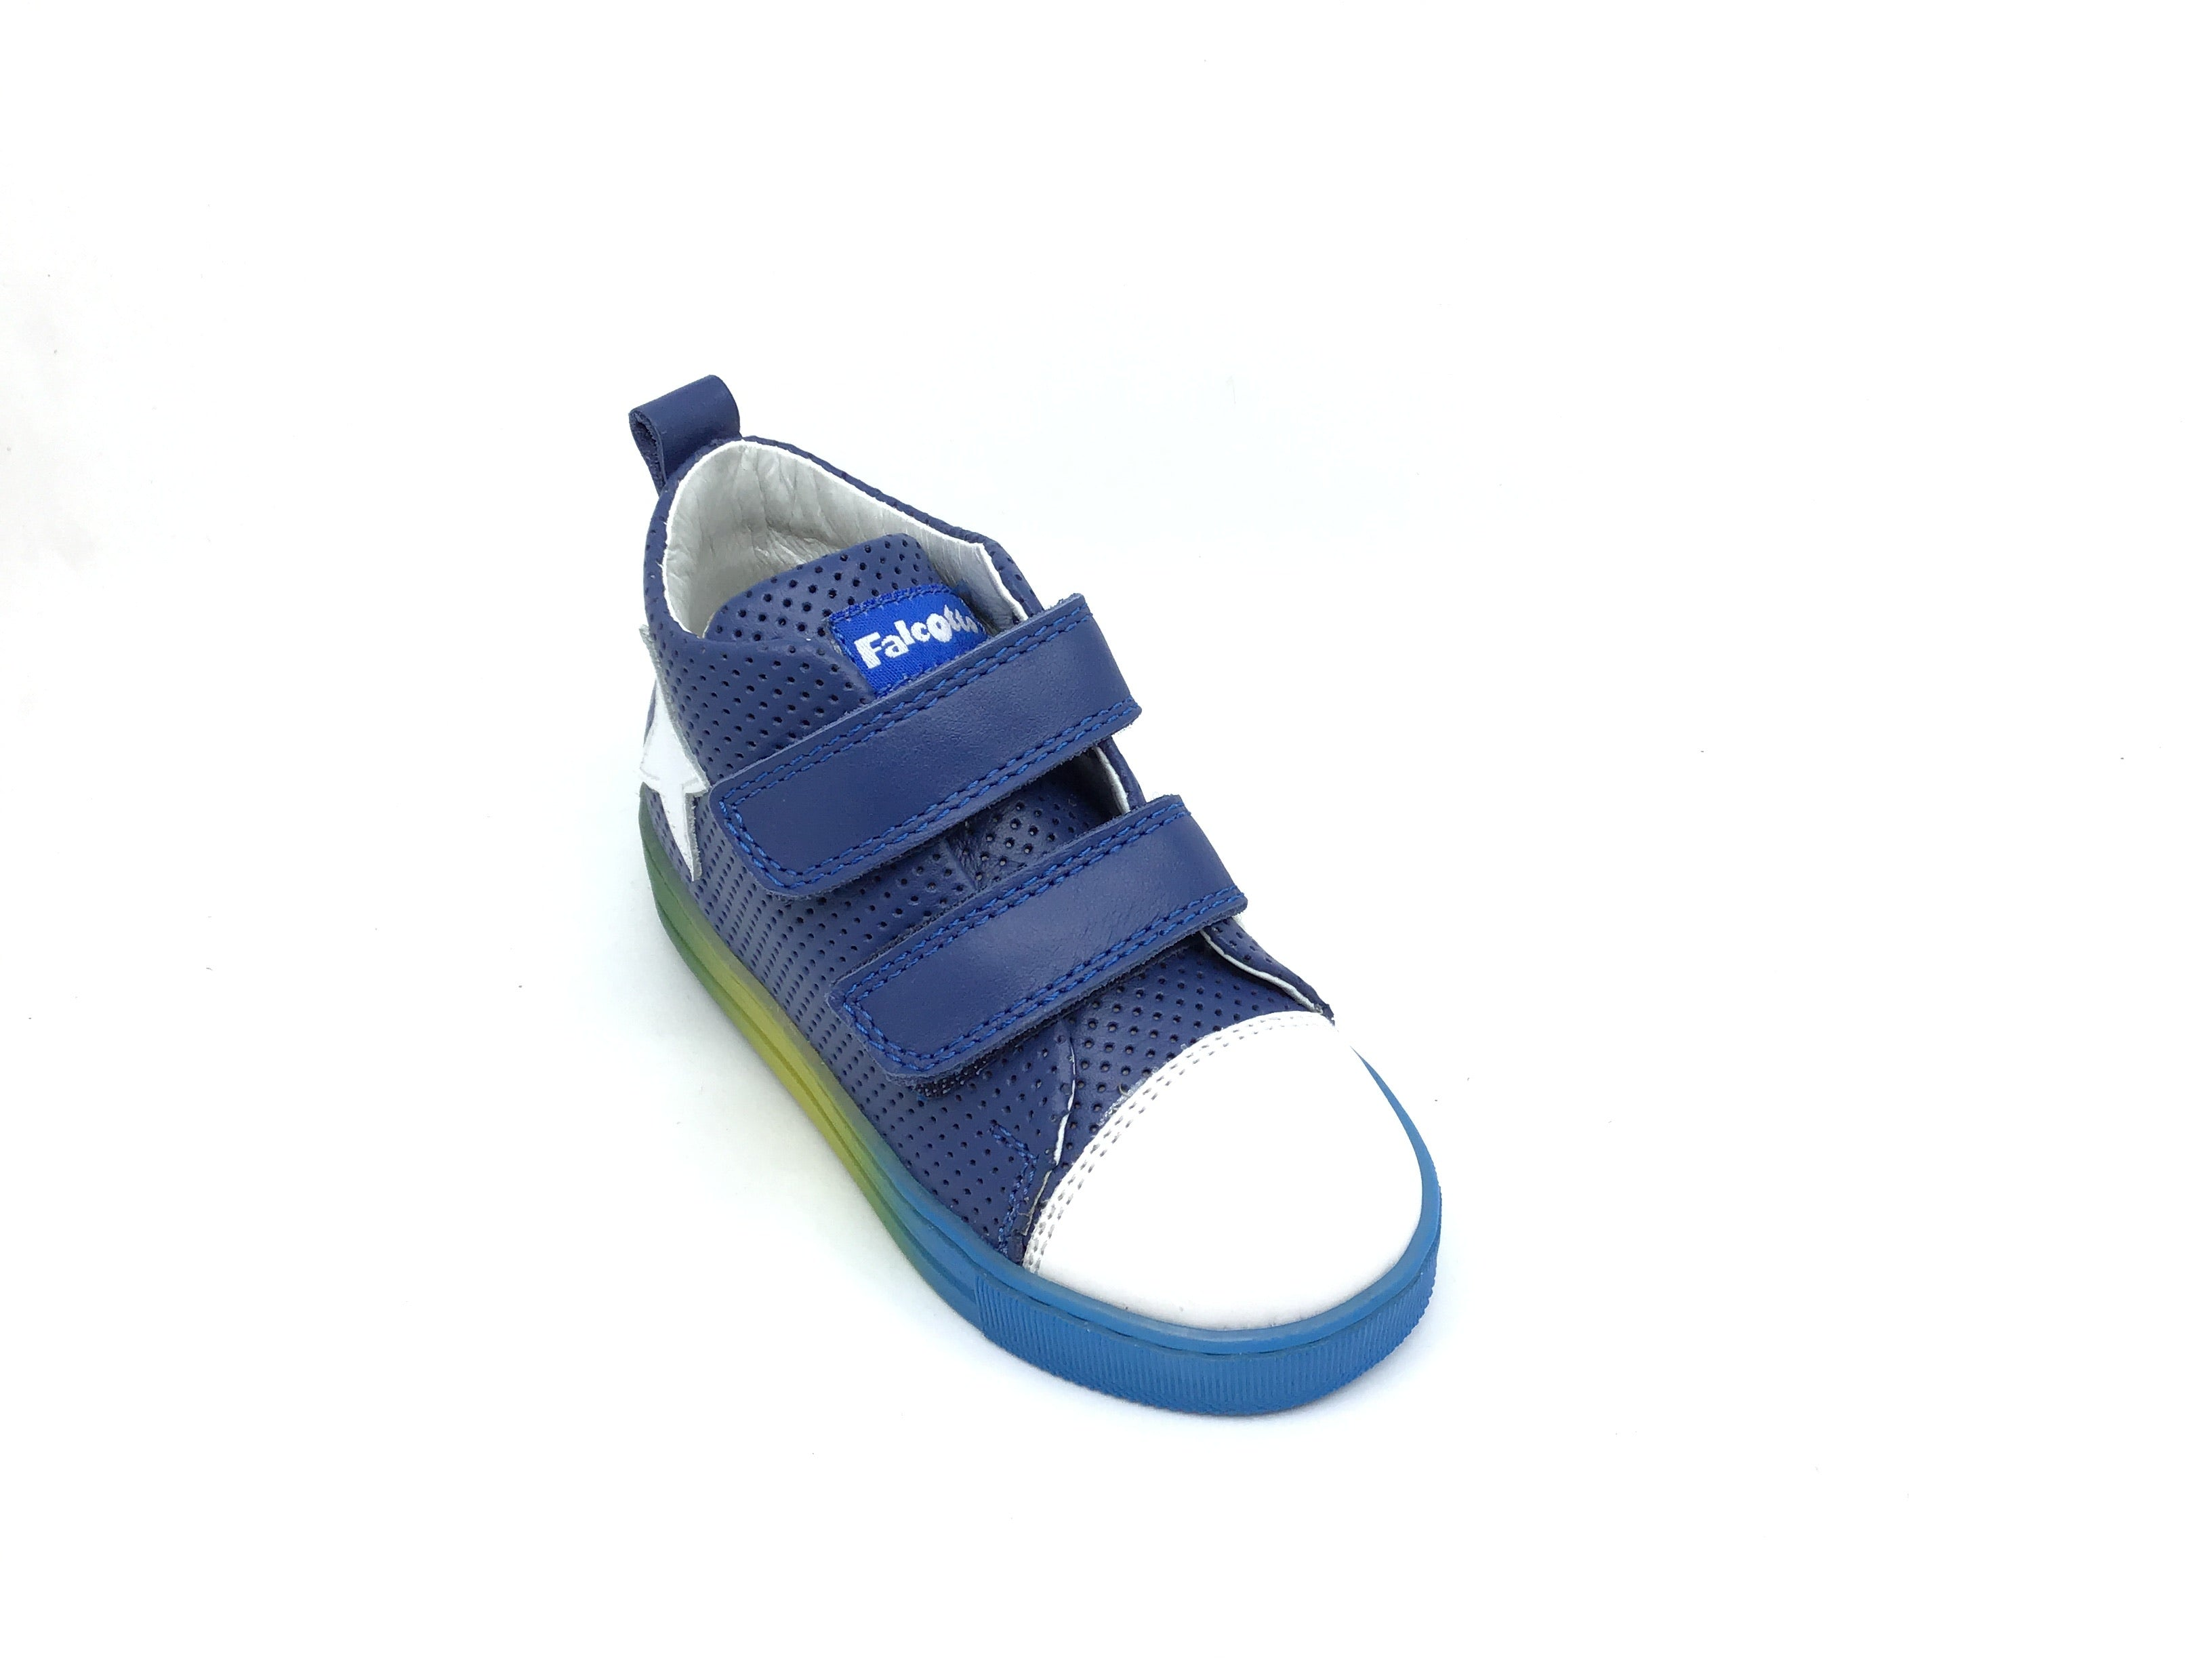 Falcotto Blue Perf Sneaker with Star